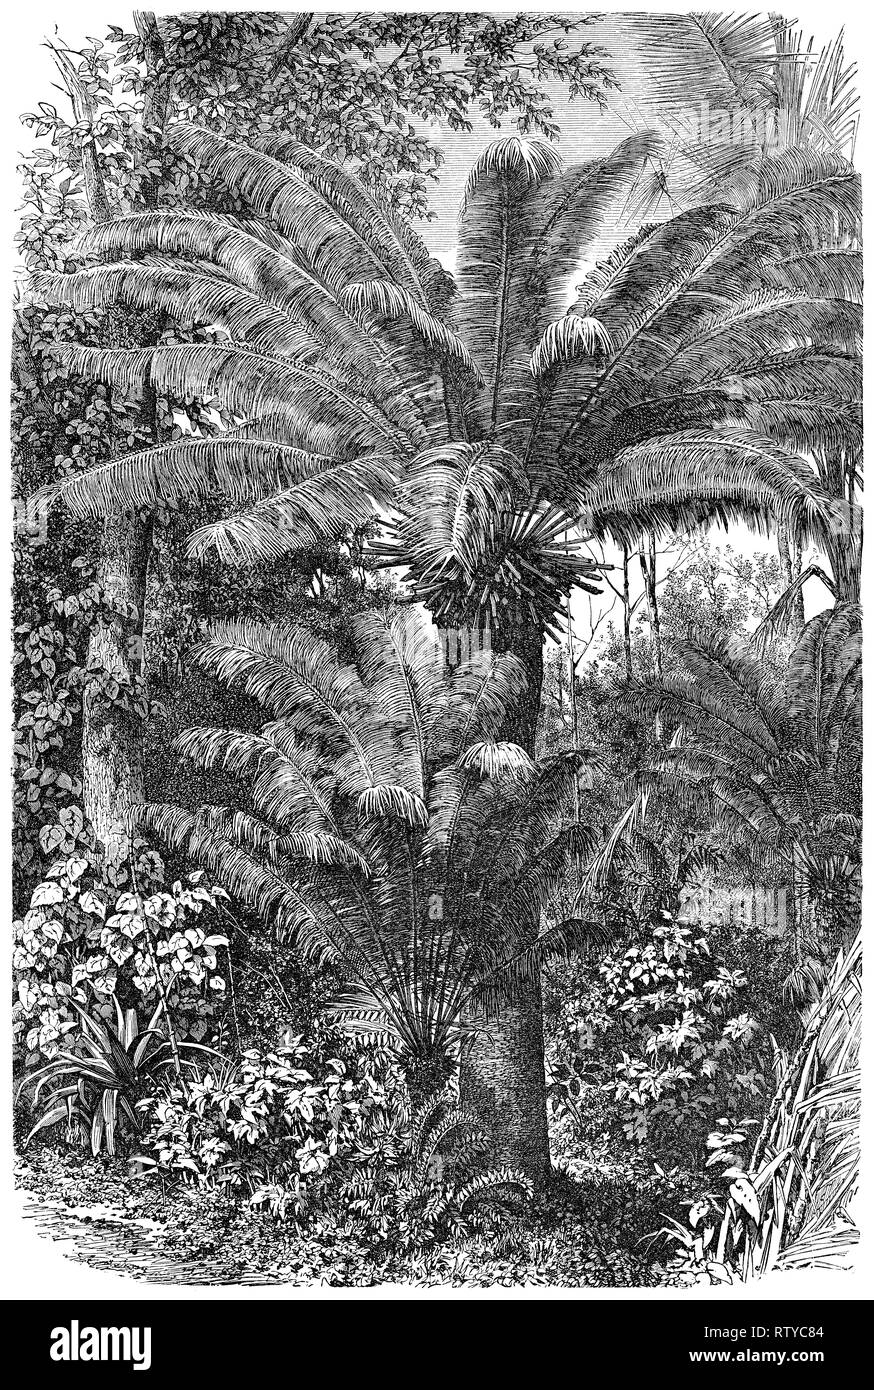 1880 vintage engraving of a palm tree in Madagascar. - Stock Image